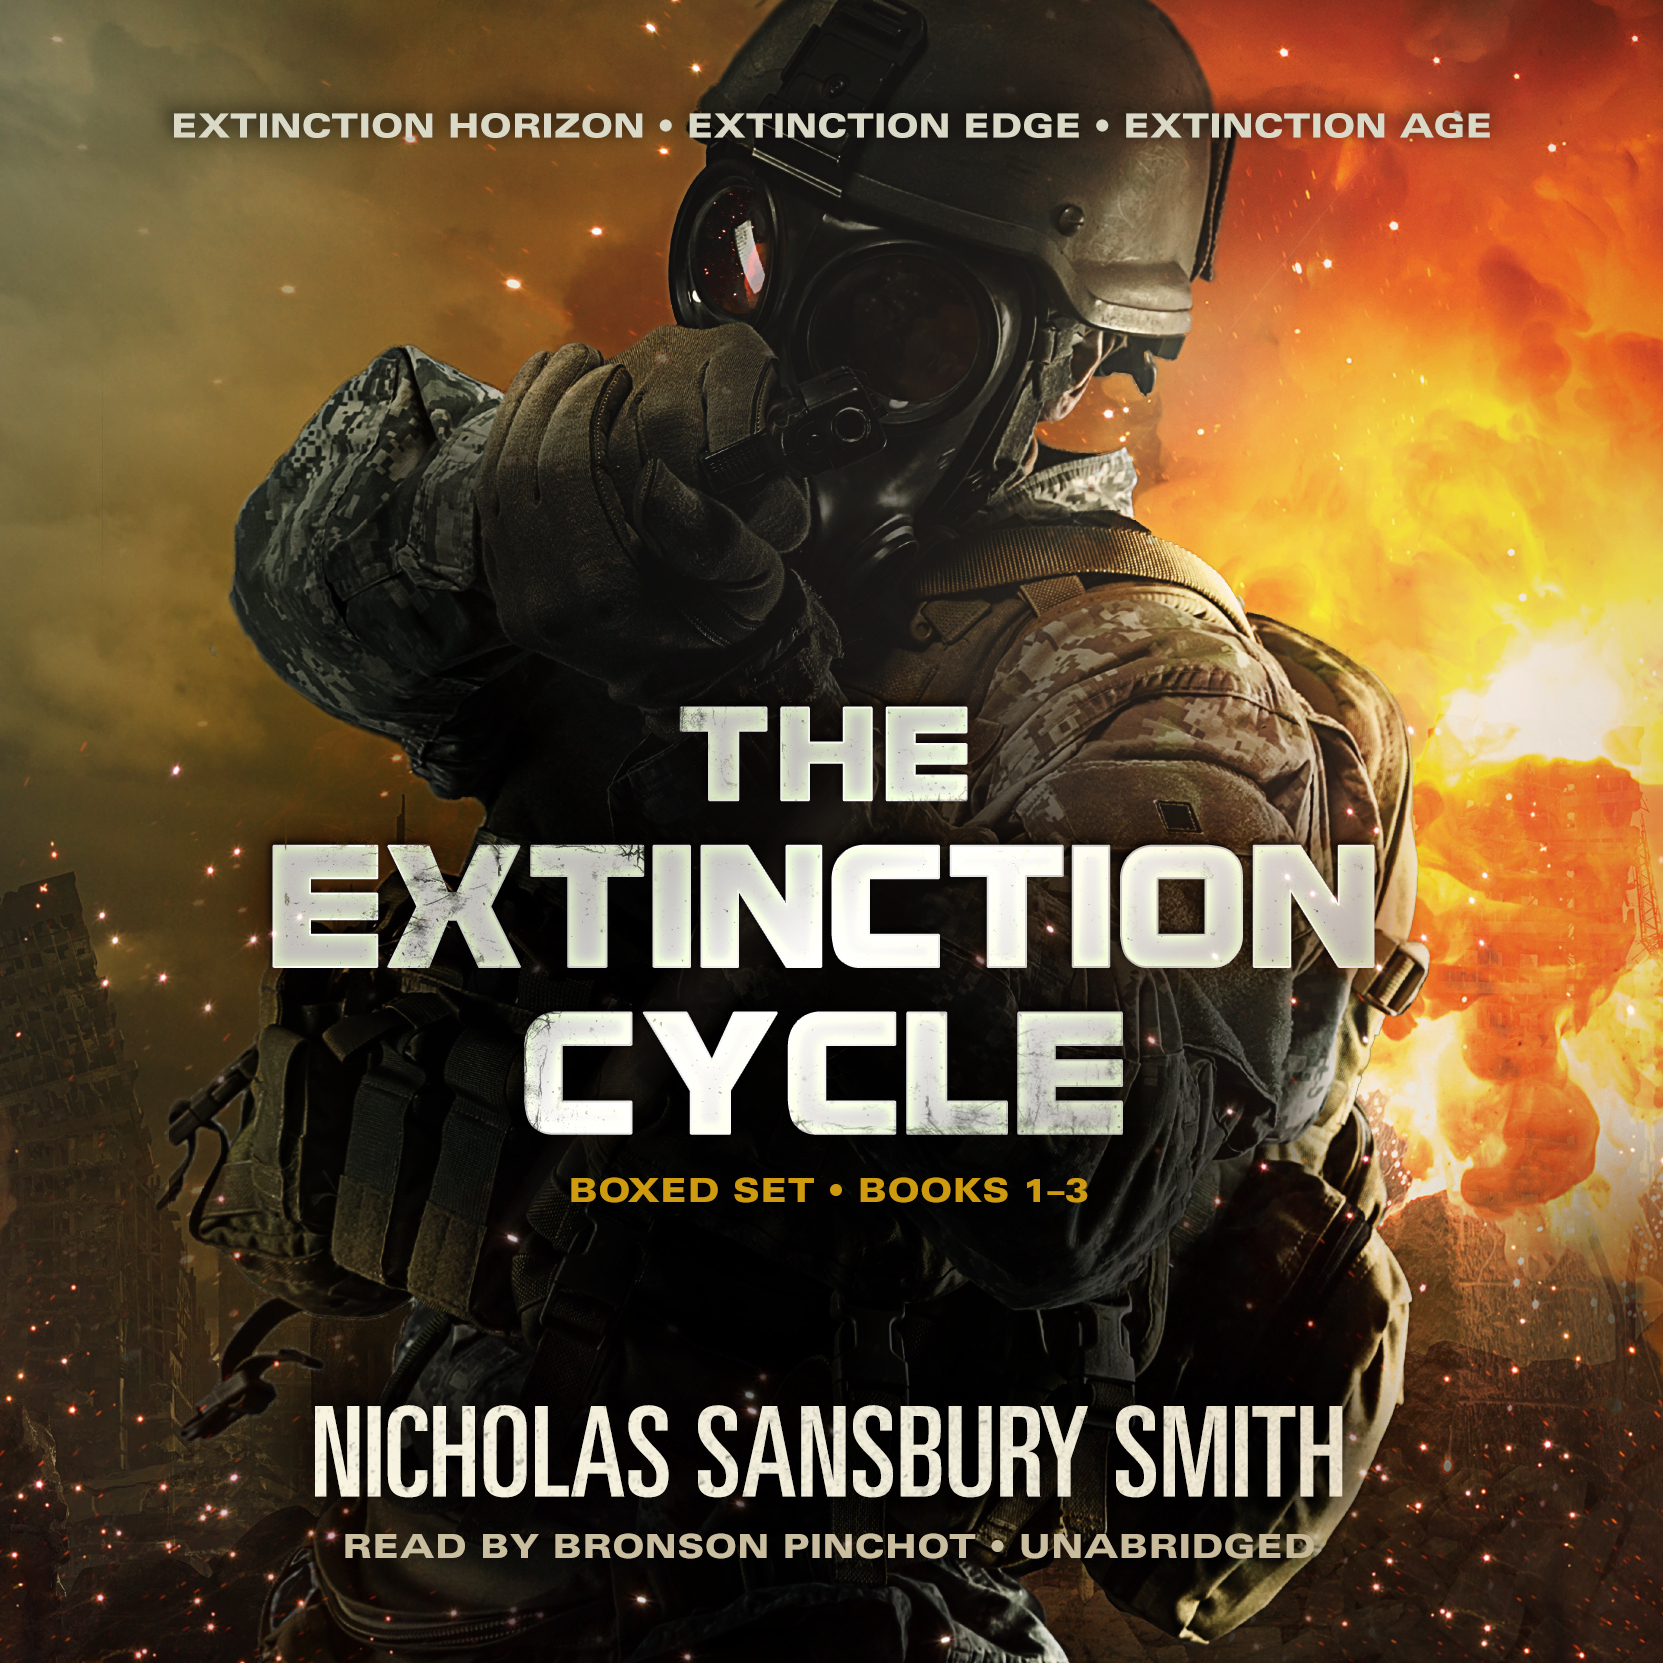 Printable The Extinction Cycle Boxed Set, Books 1–3: Extinction Horizon, Extinction Edge, and Extinction Age Audiobook Cover Art